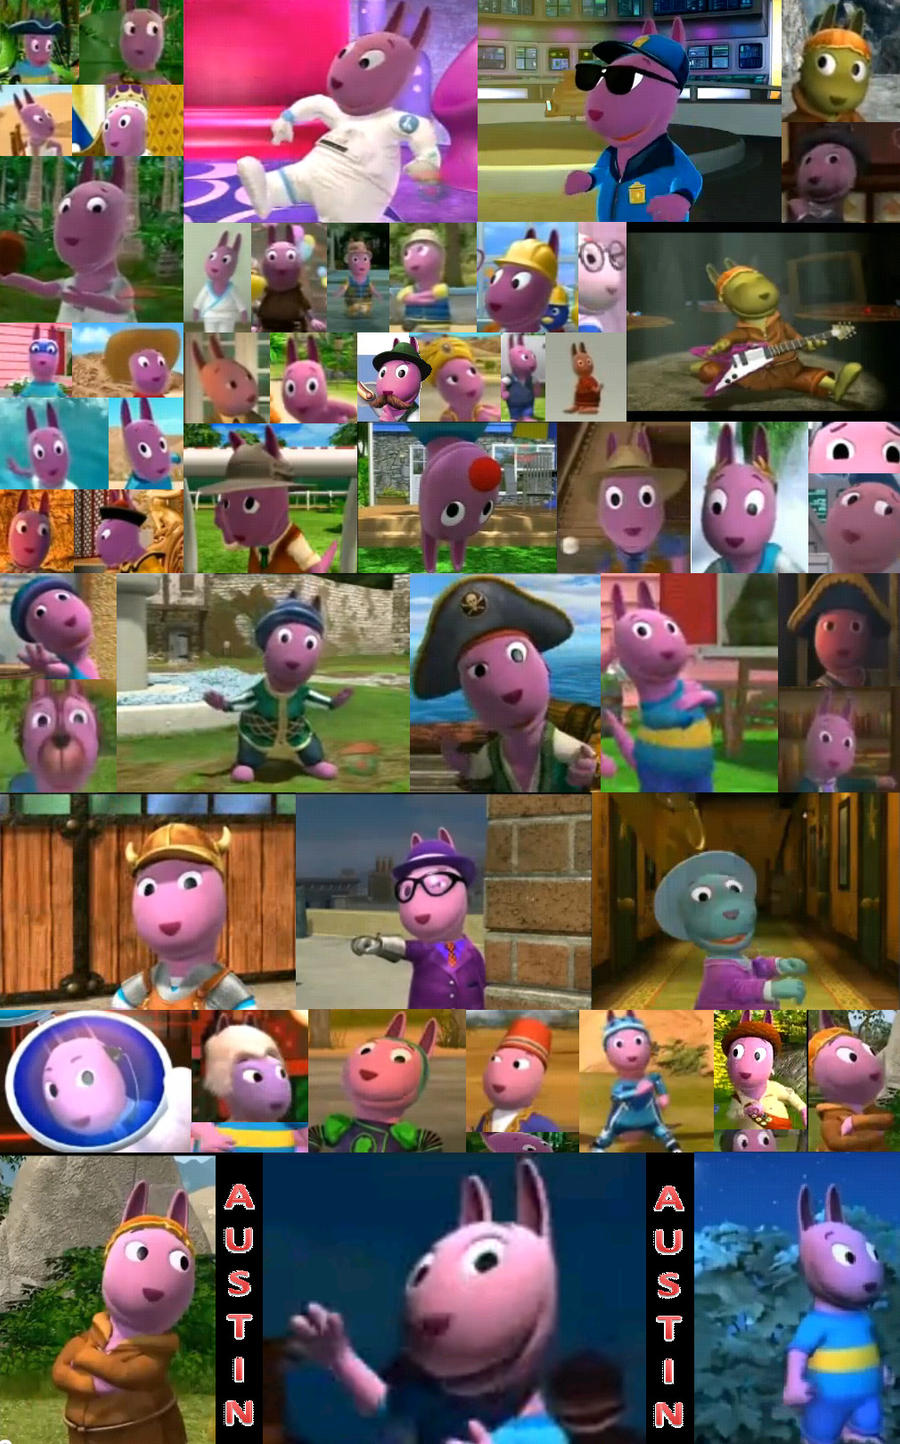 backyardigans favourites by mikeylover6 on deviantart